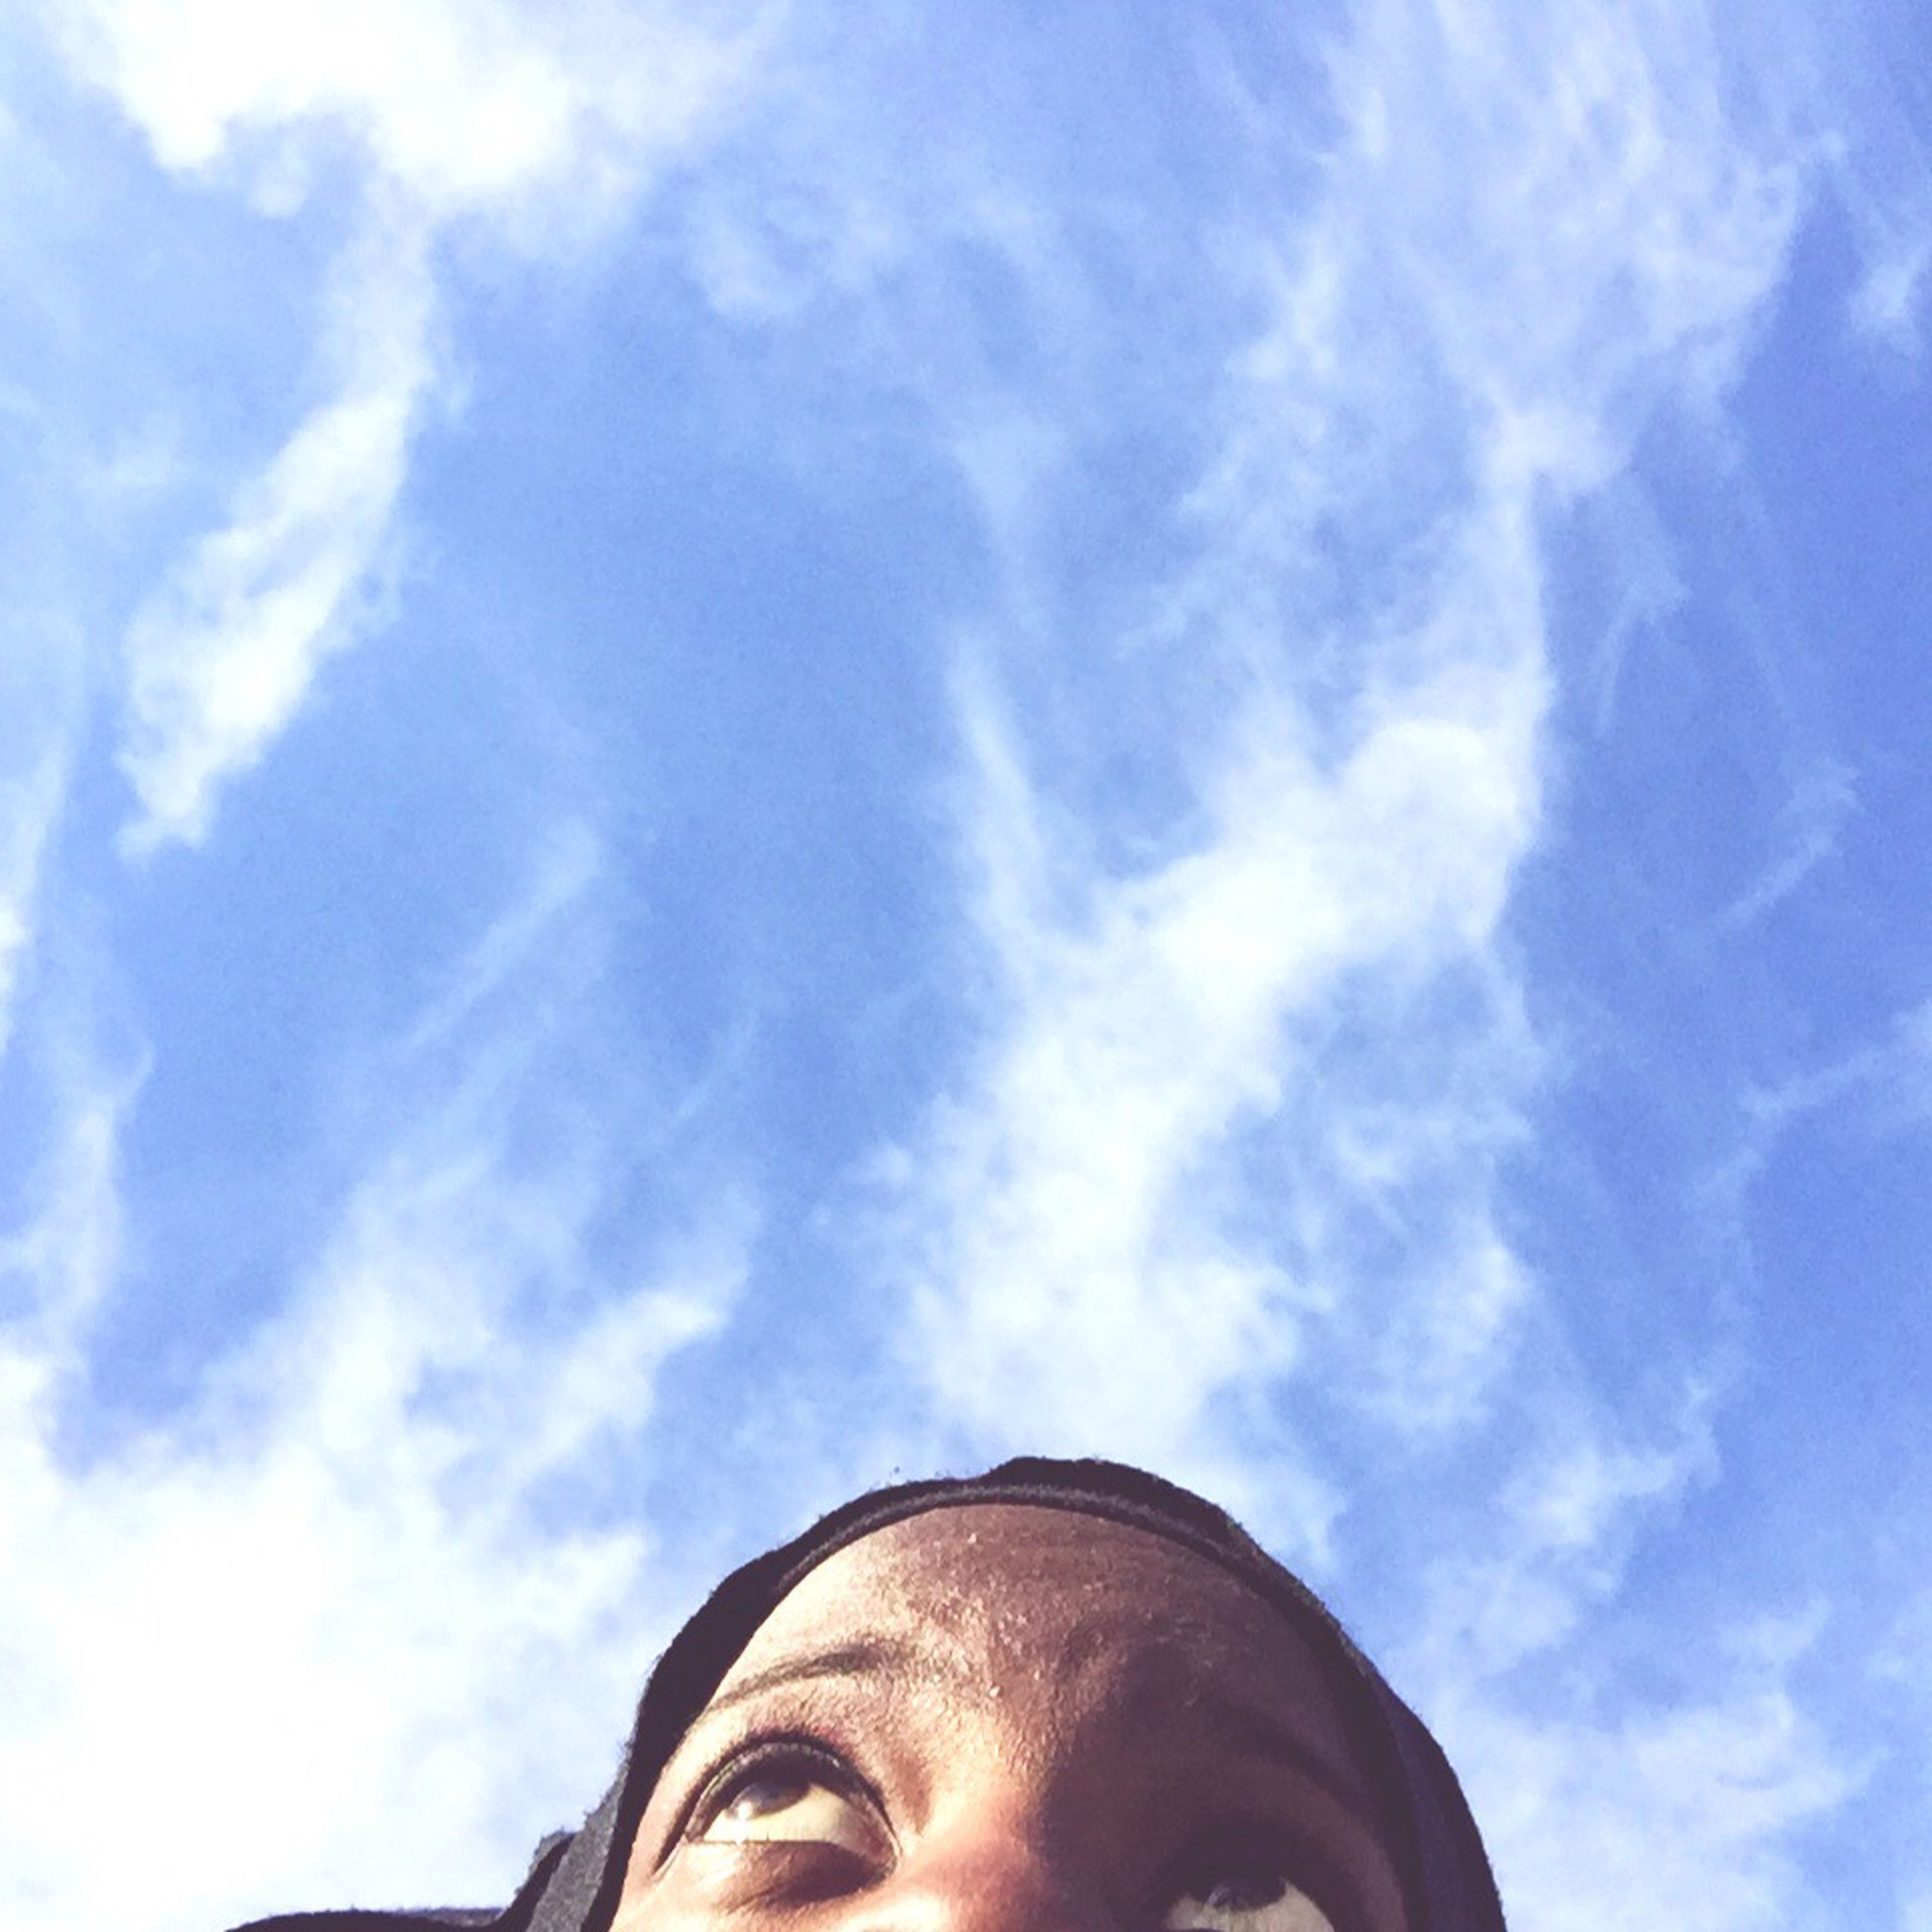 low angle view, sky, headshot, lifestyles, blue, leisure activity, cloud - sky, head and shoulders, day, part of, cloud, young adult, outdoors, close-up, person, sunlight, looking at camera